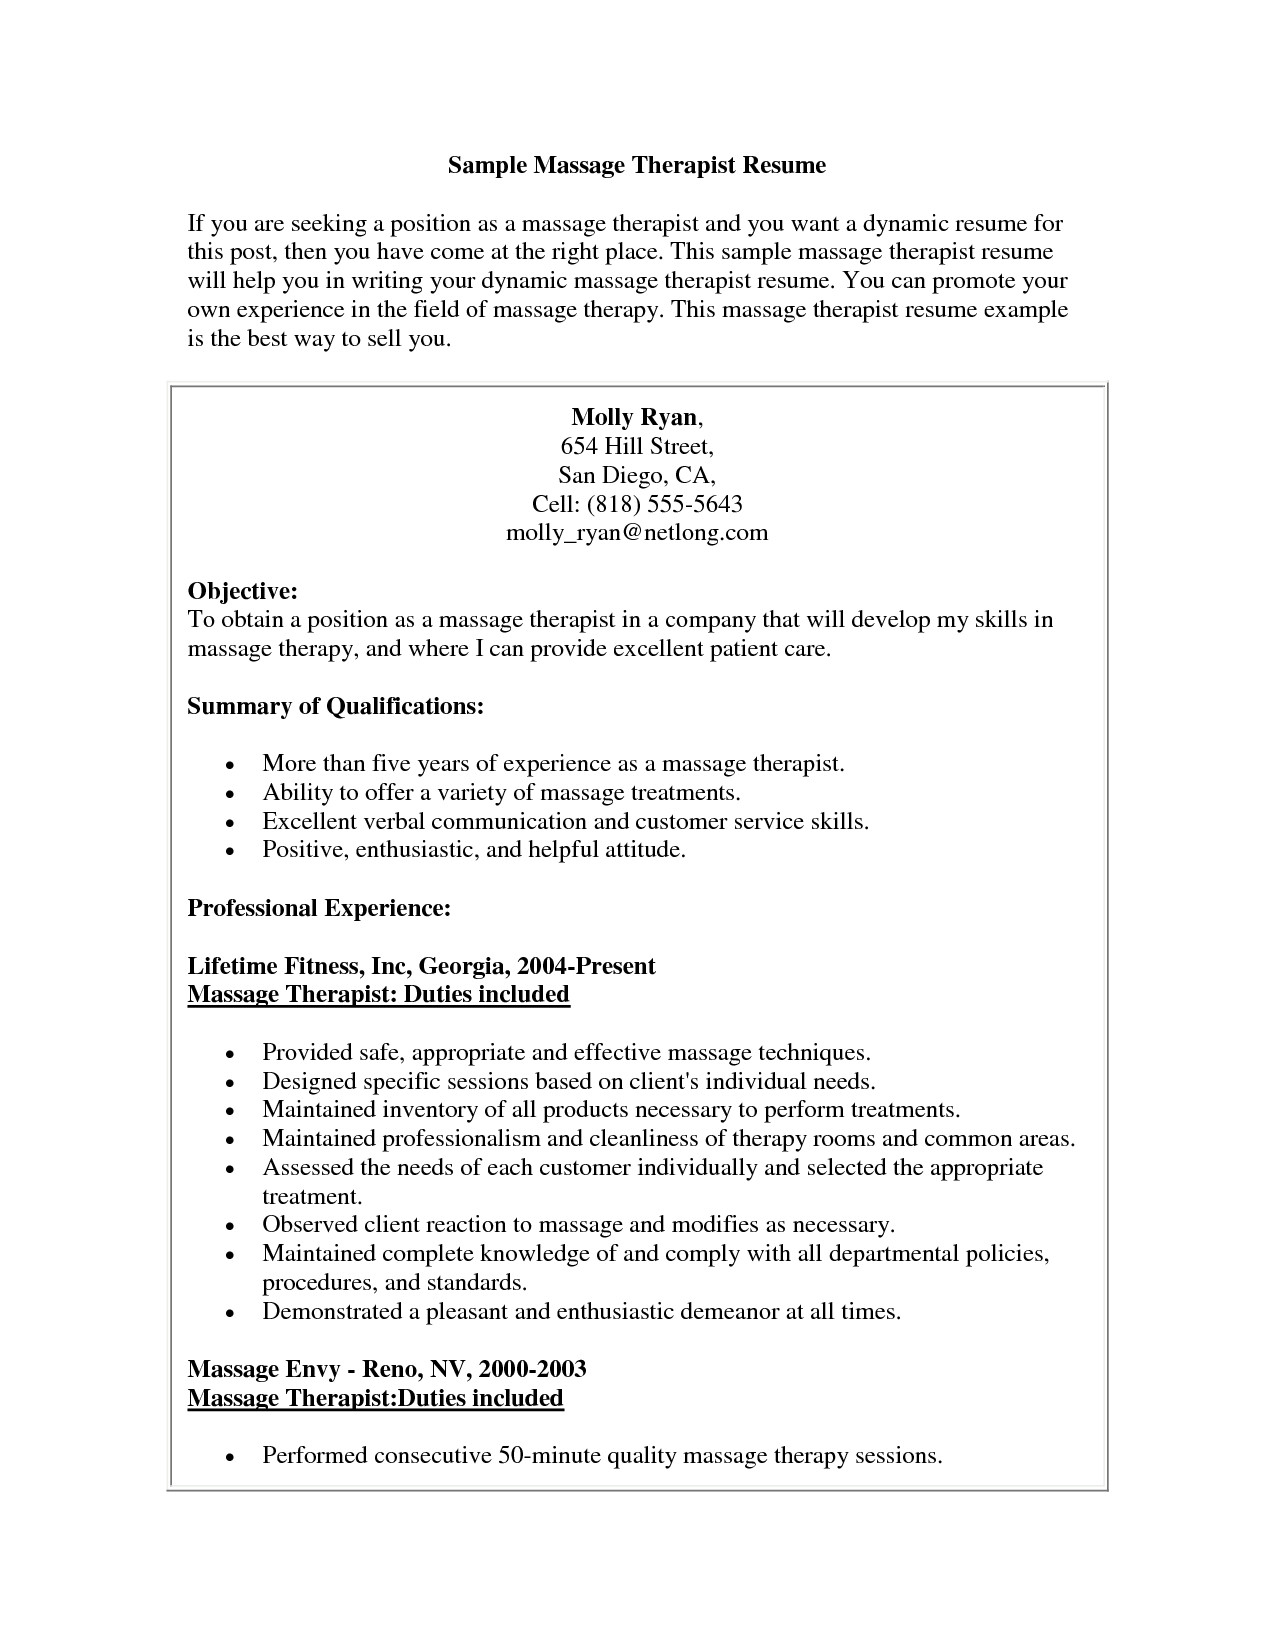 Massage Resume Template - Massage therapist Resume Example Elegant Massage therapist Resume